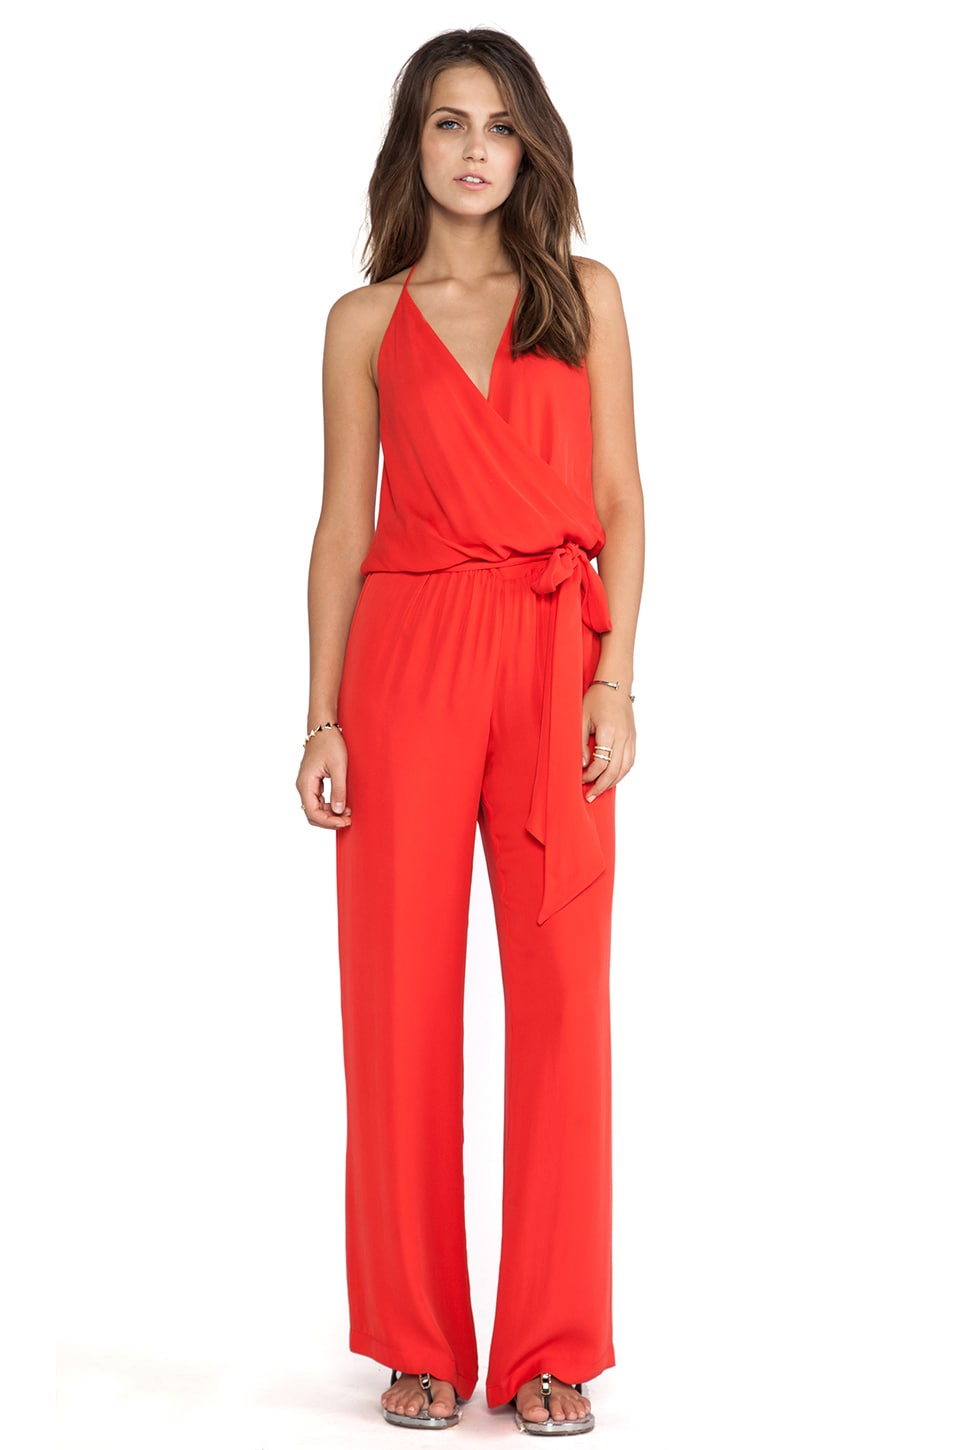 Haute Hippie Strappy Cami Onesie with Self Belt in Paprika